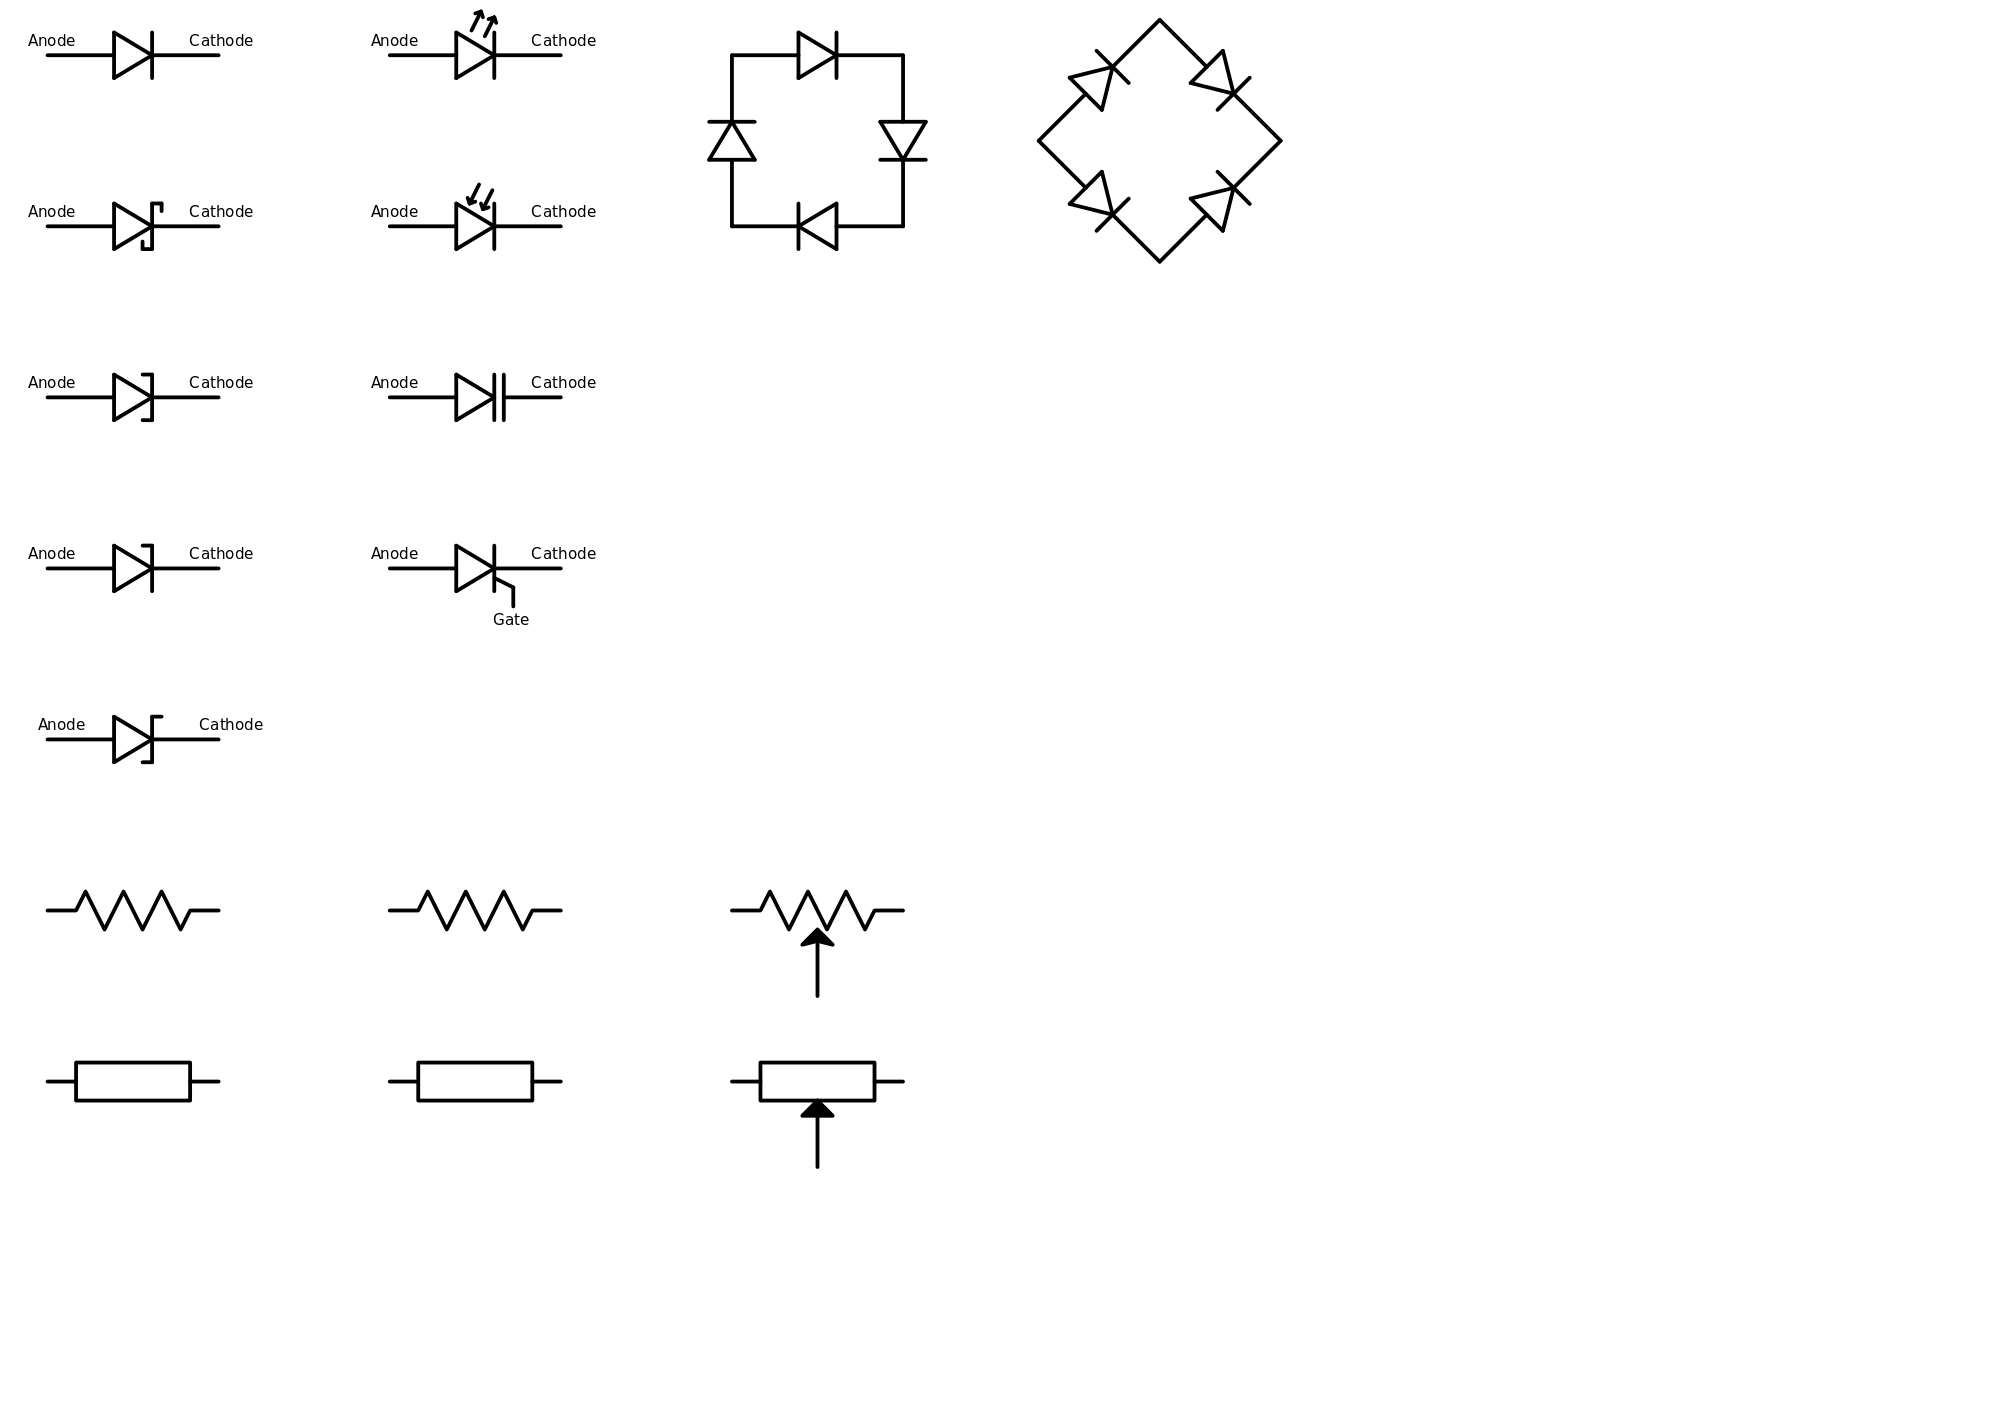 electrical symbols  u0026 electronics symbols  make schematics